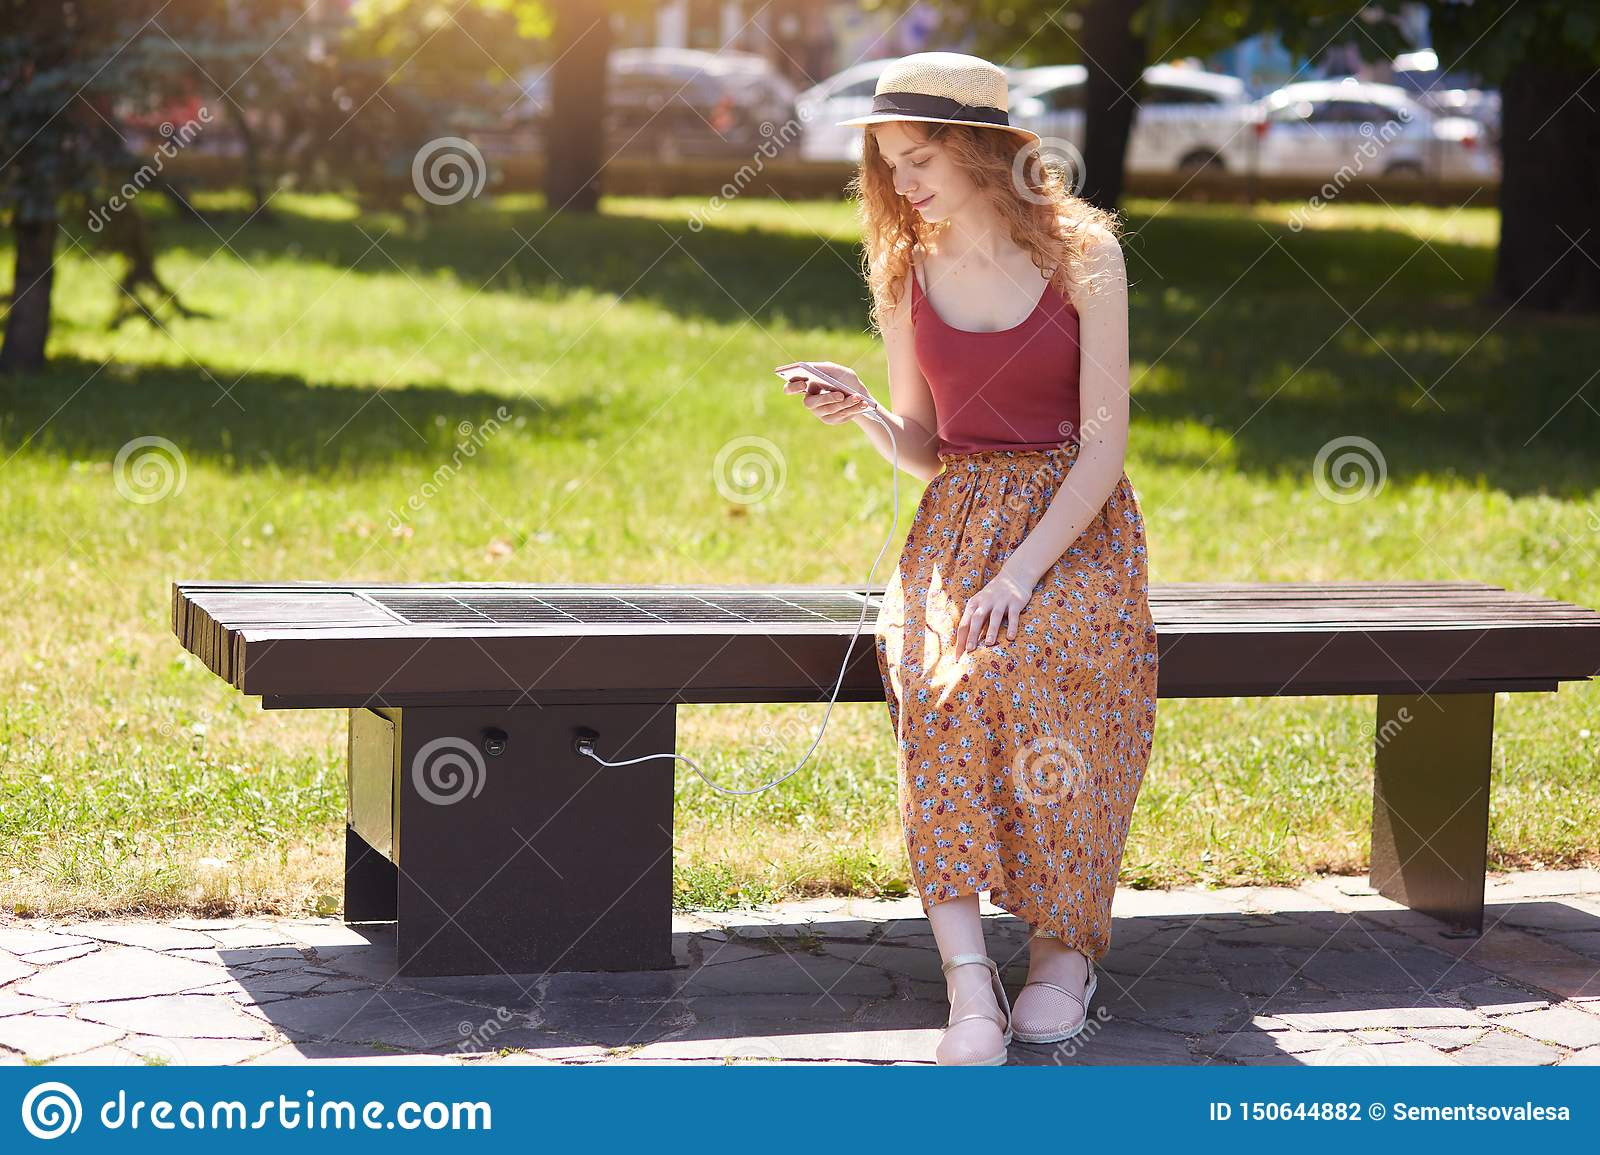 Image Of Young Girl Charges Mobile Phone Via USB Outdoors